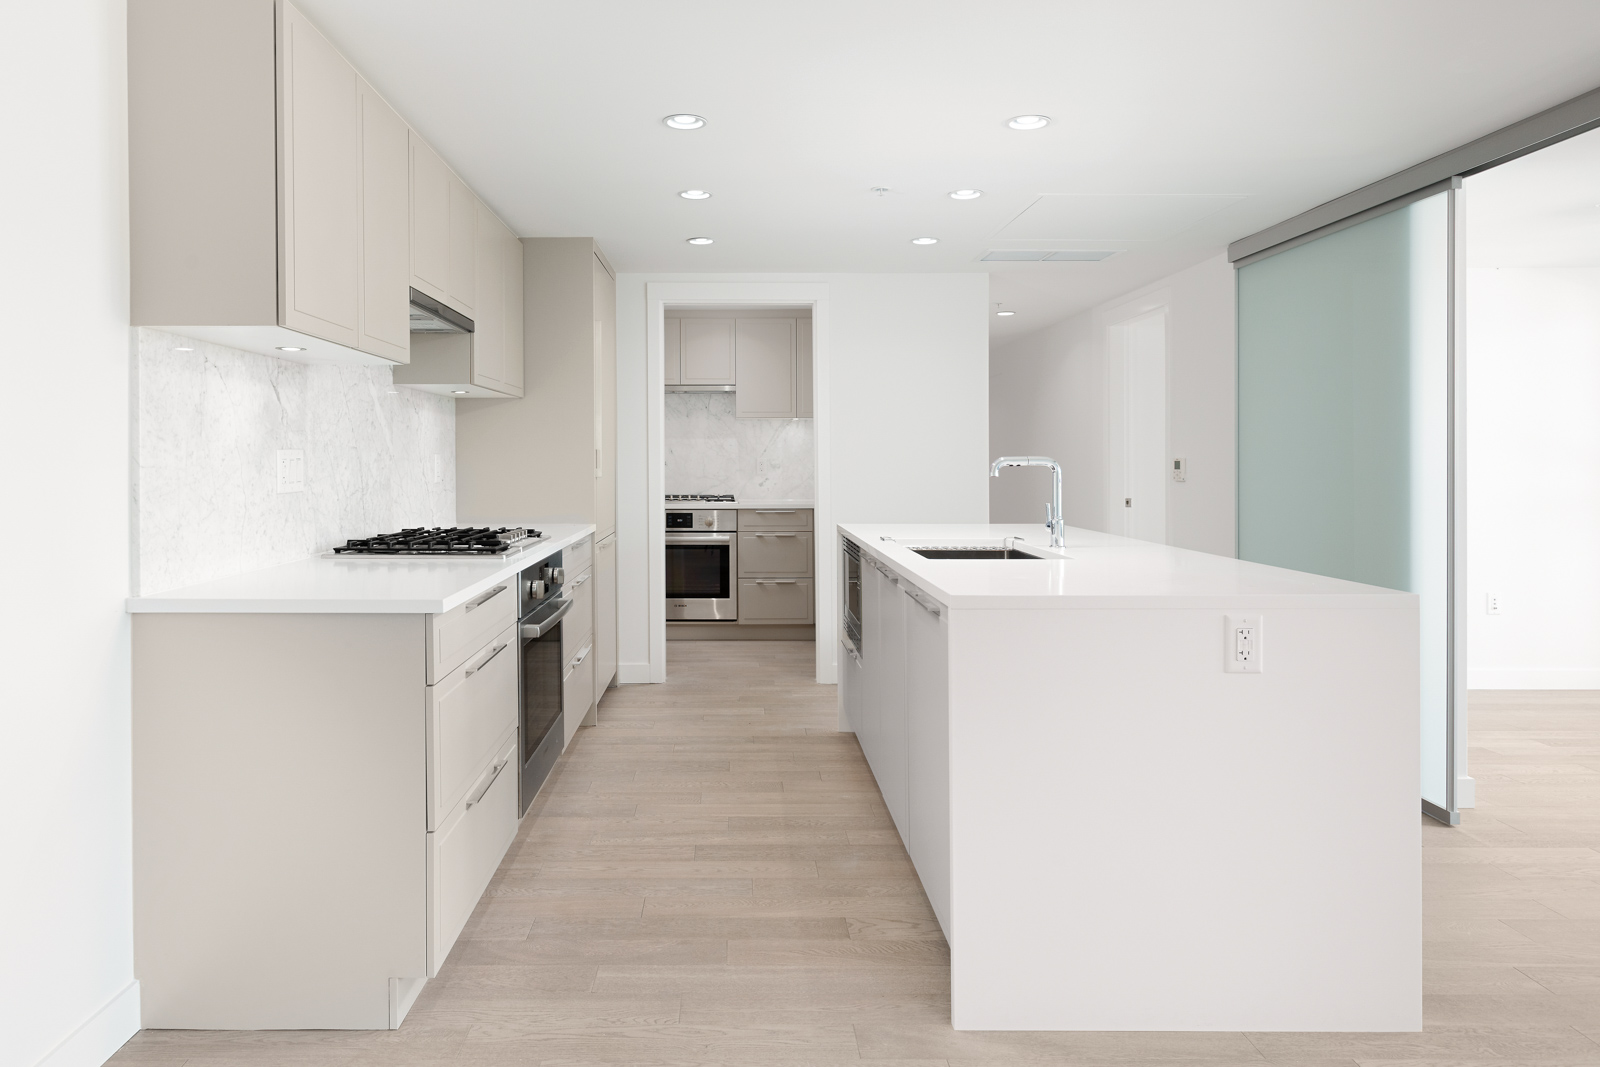 Kitchen with stainless steel appliances in Vancouver's Marpole community.